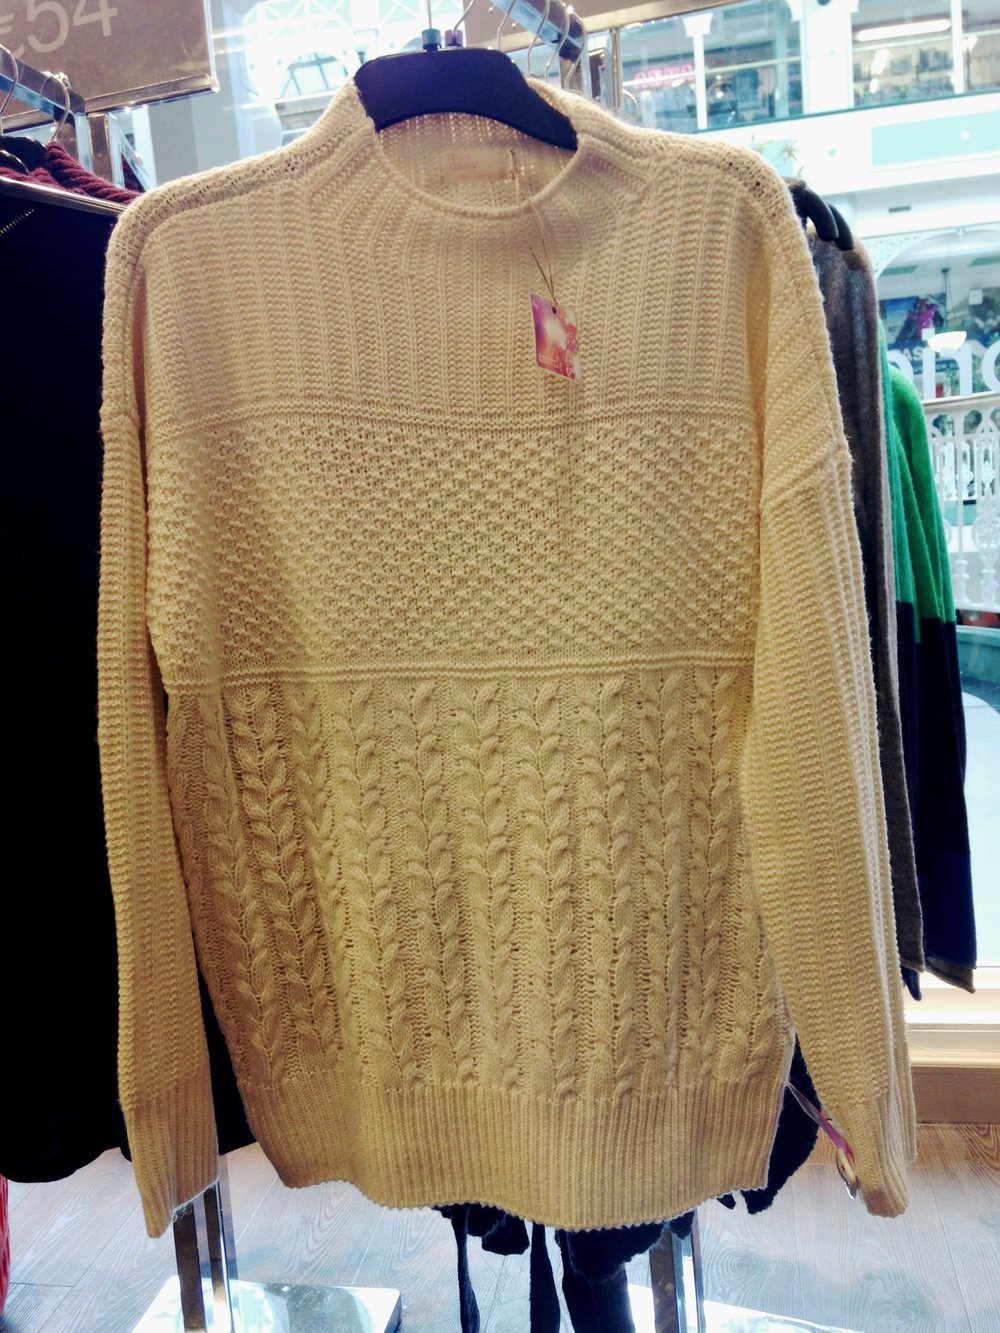 Tk Maxx! Cream traditional knit. €26.99